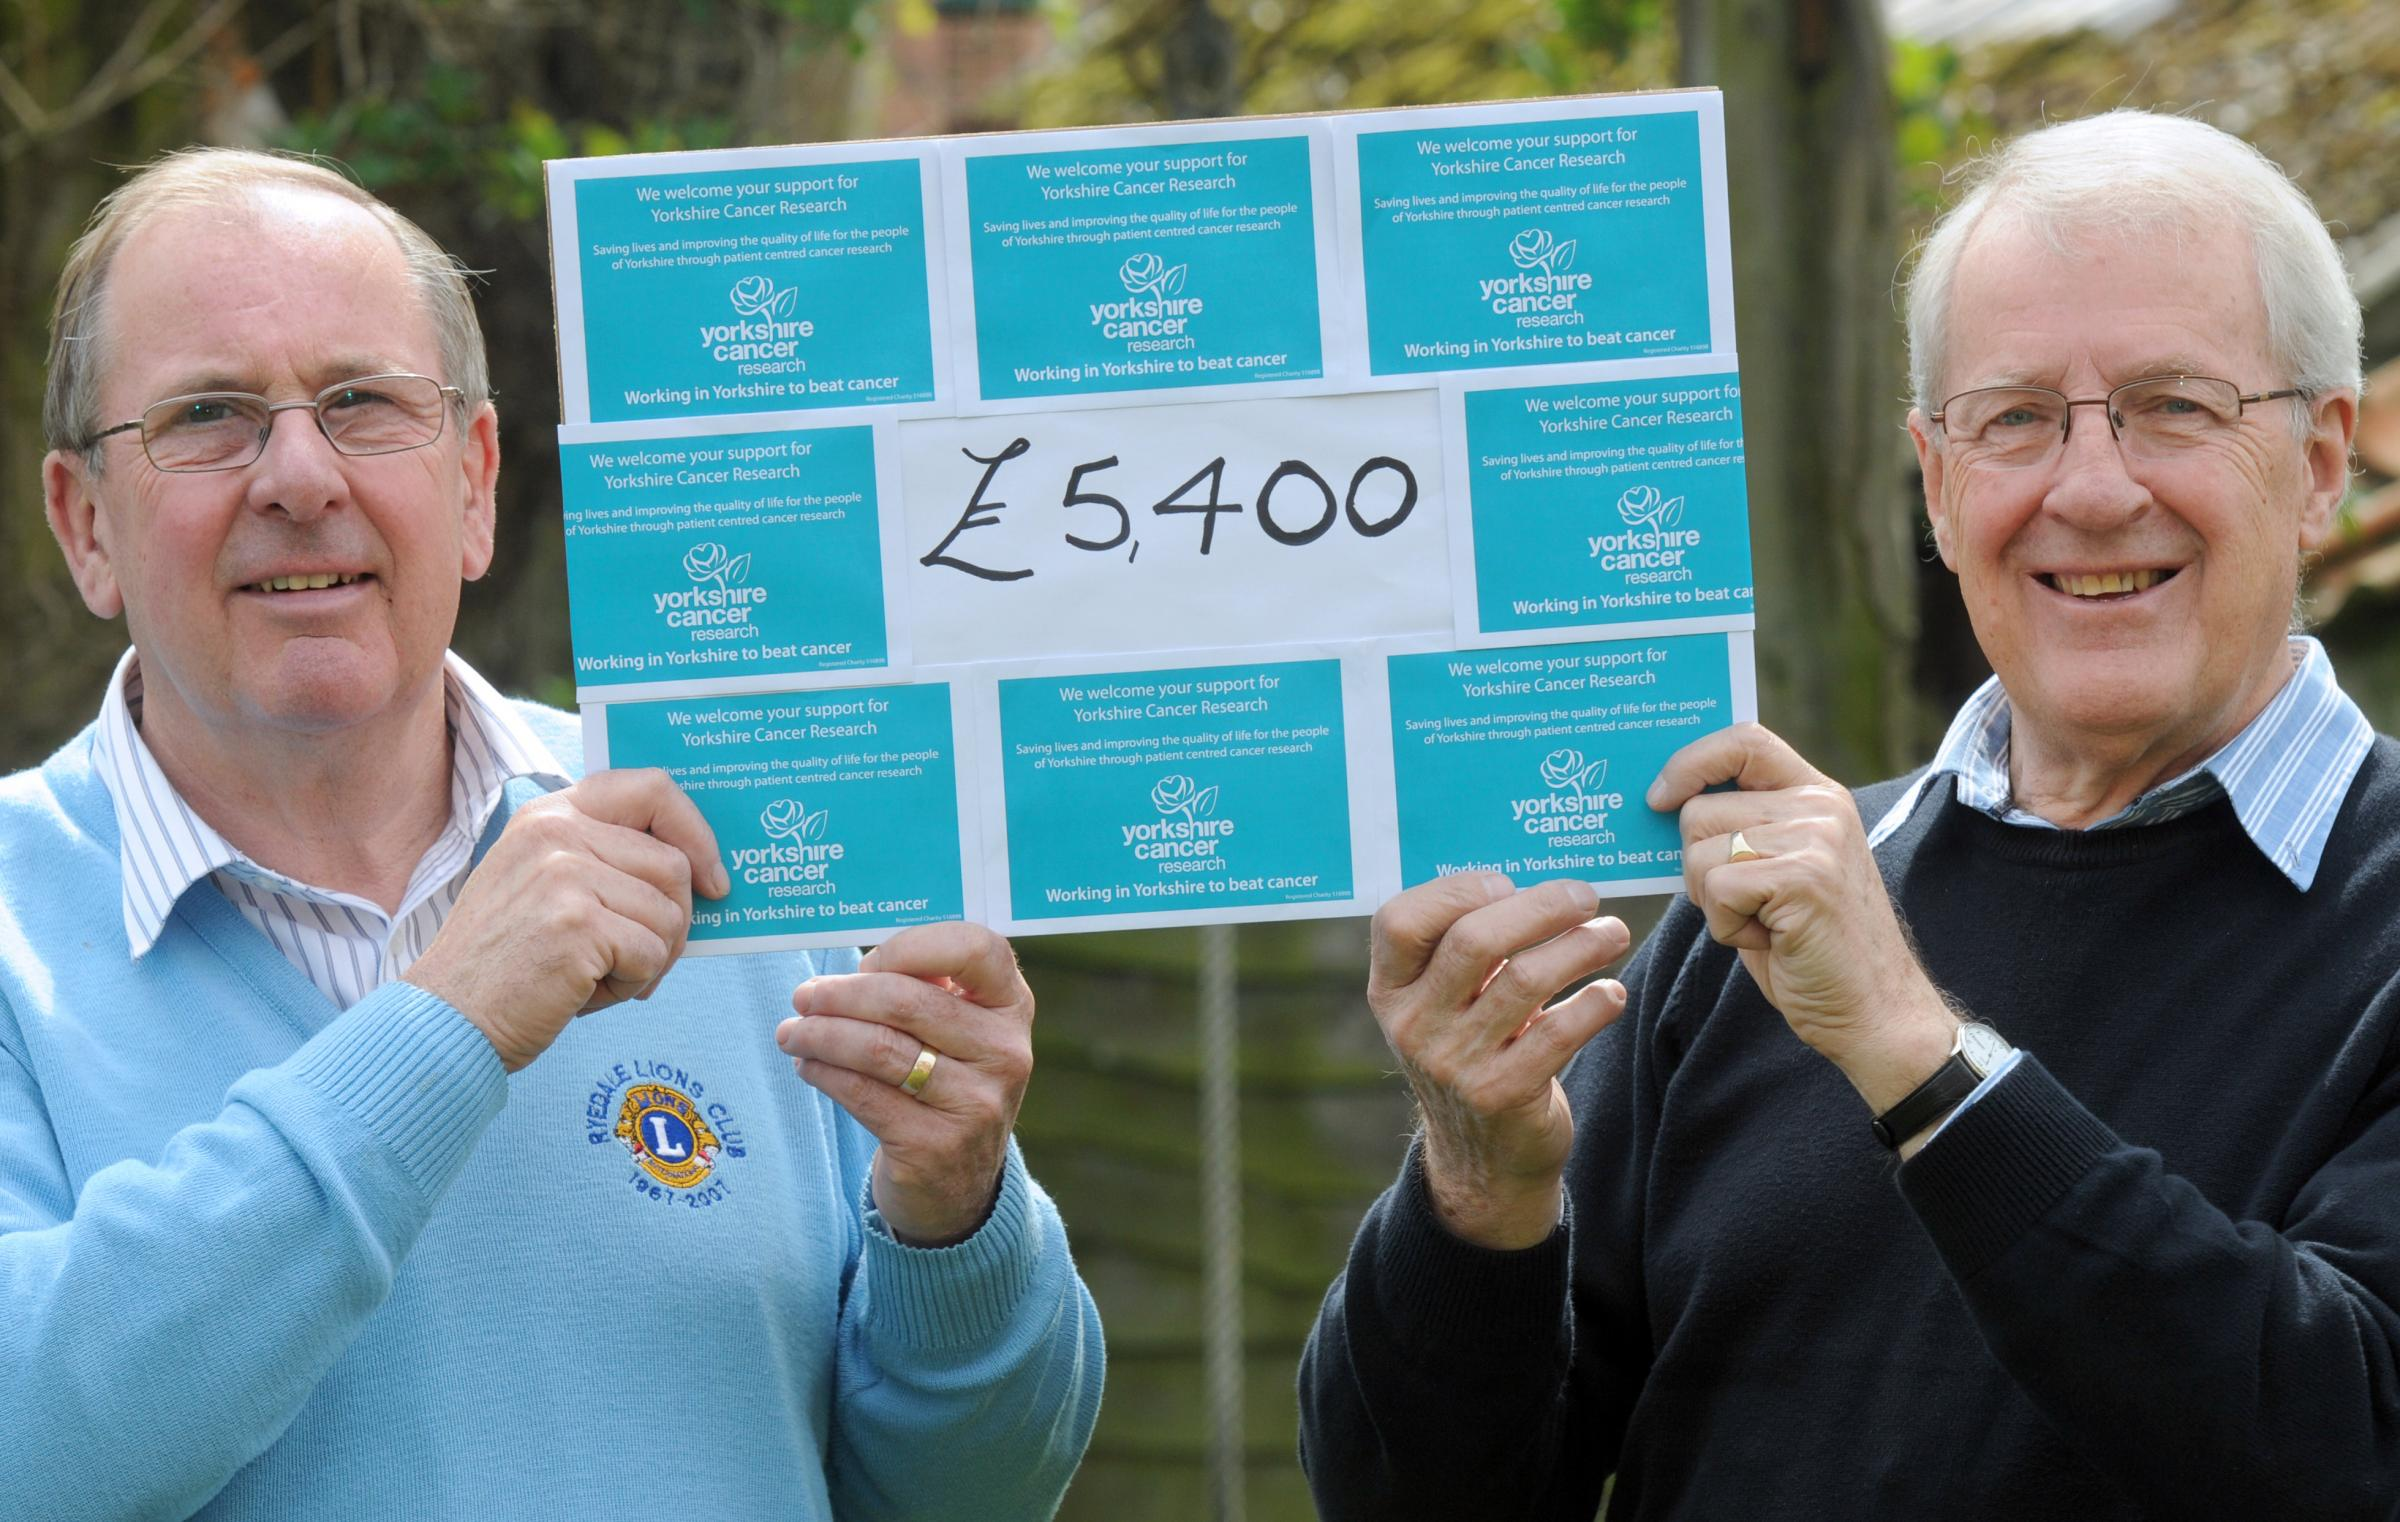 Ryedale Lions Club president Vic Hall, left, and Ken Chadwick, chairman of the Pickering committee of Yorkshire Cancer Research who have raised £5,400 for the cause